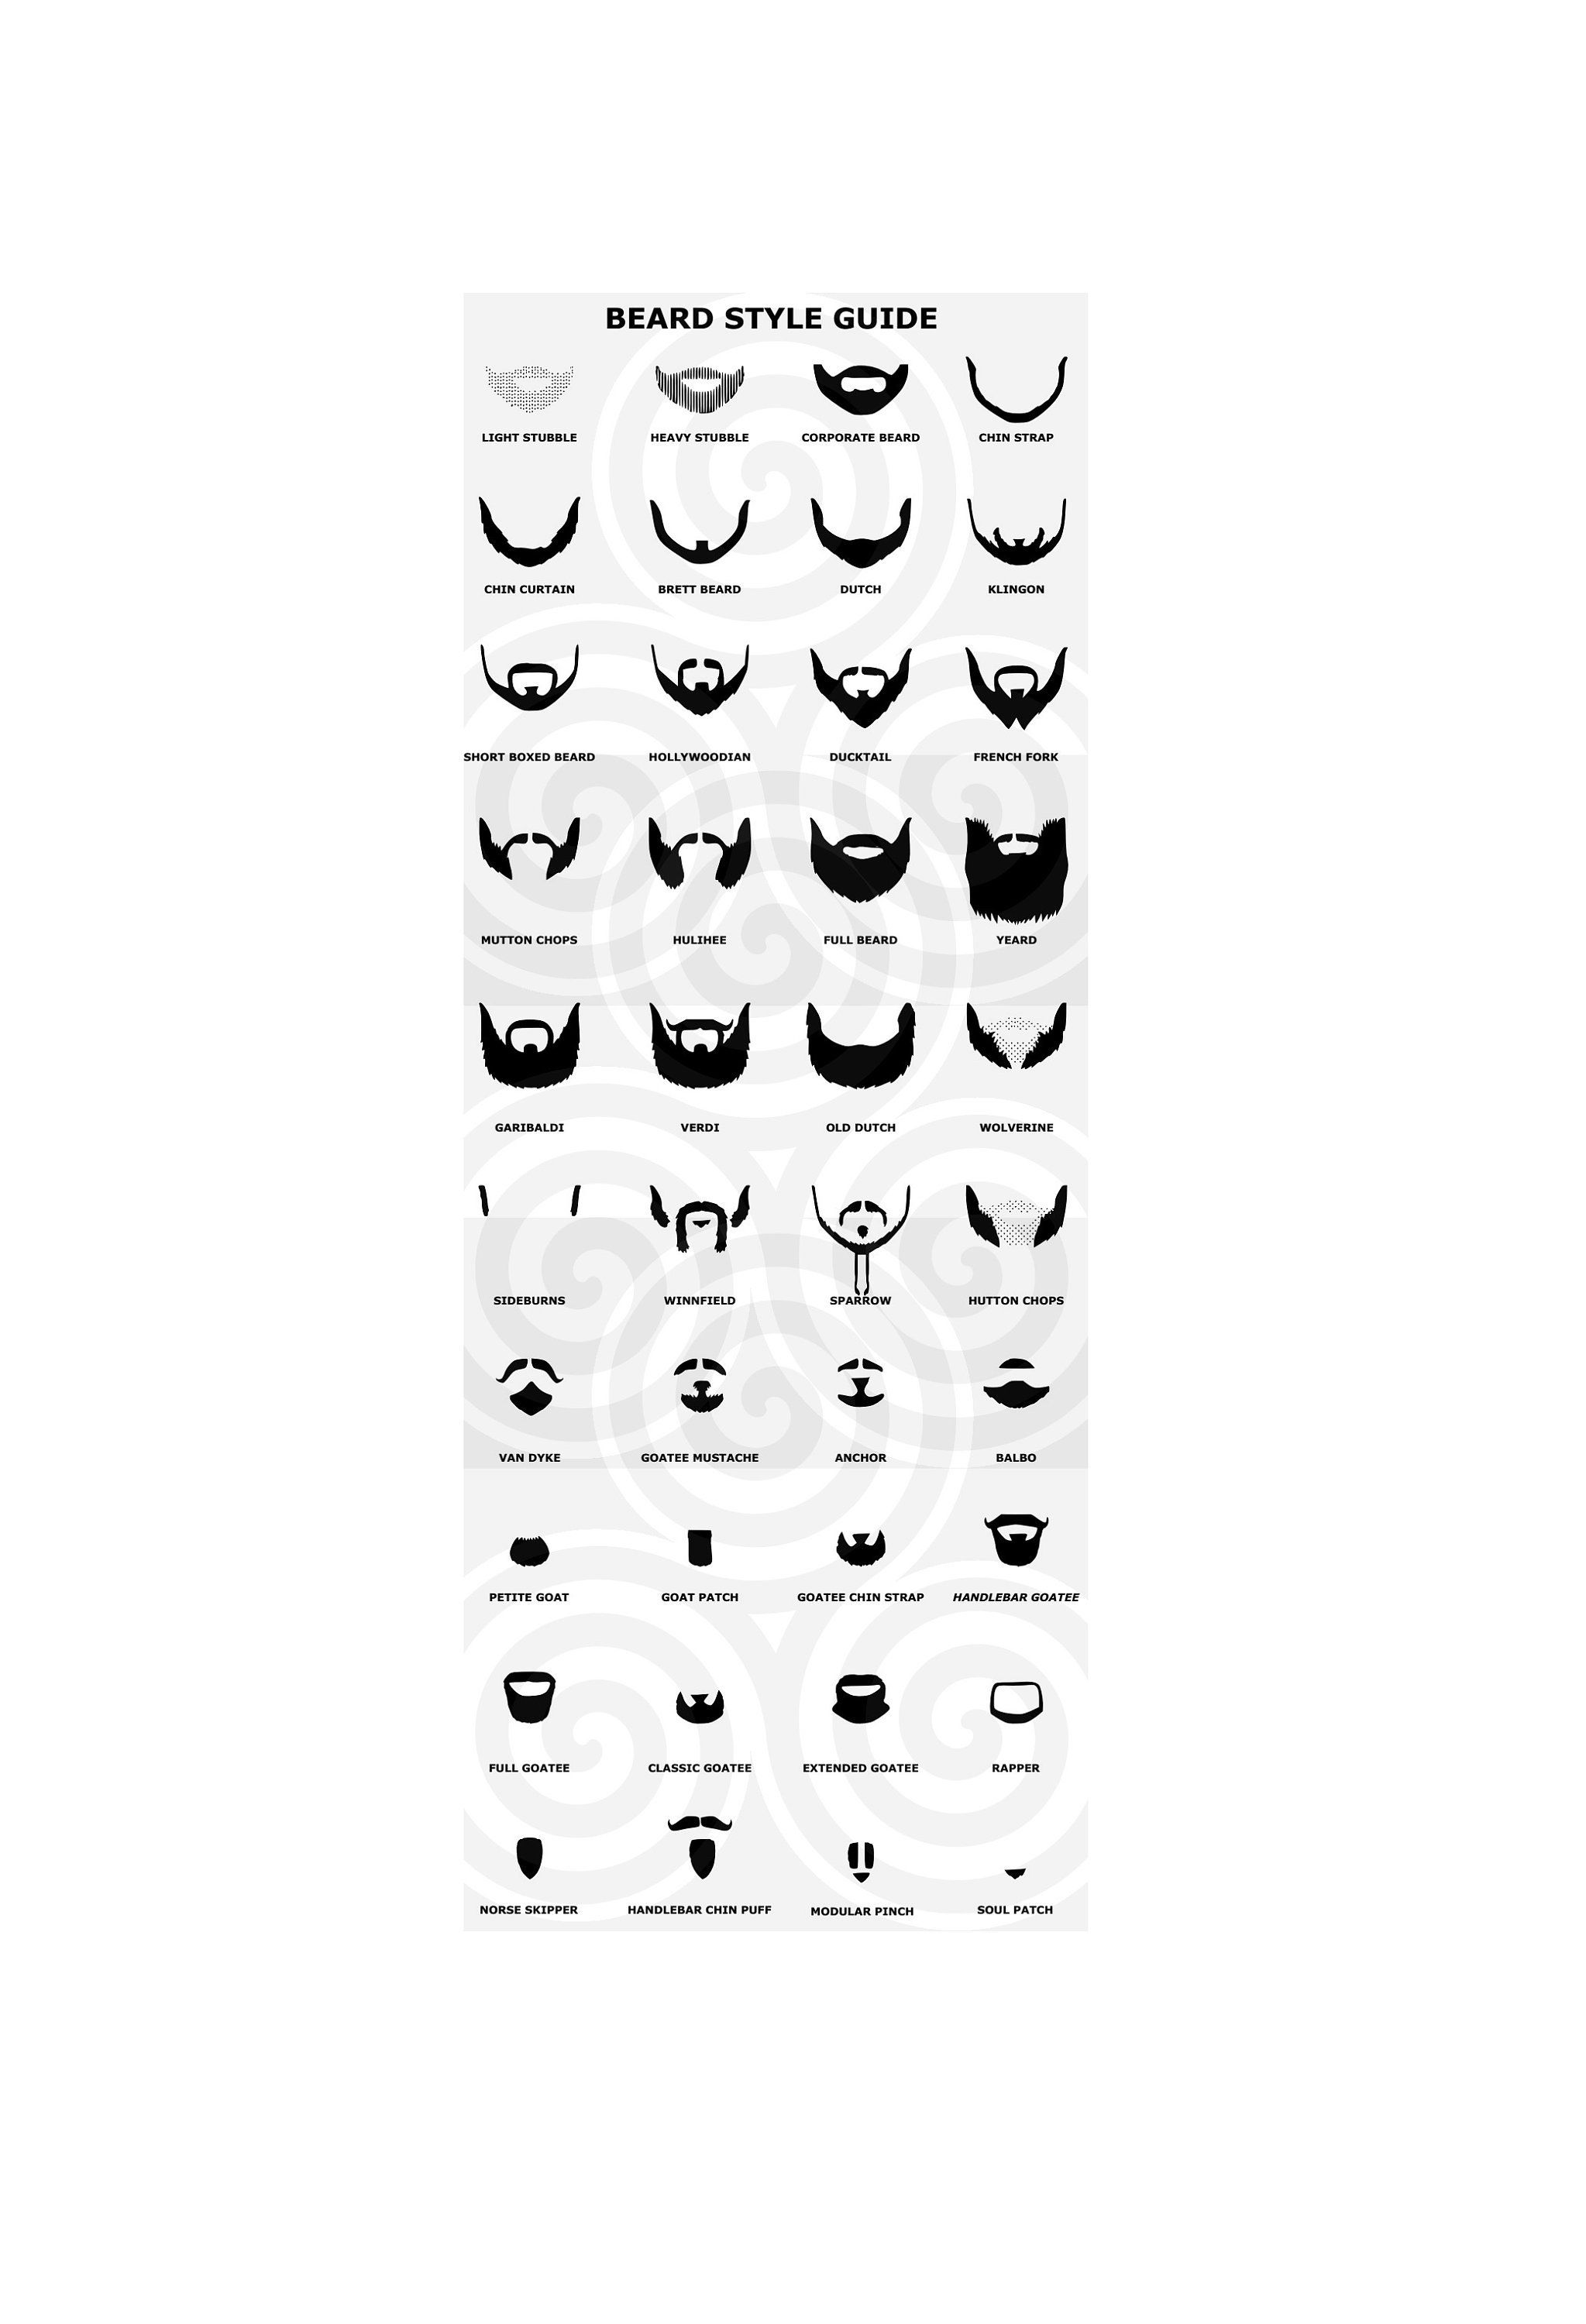 Beard Style Guide Poster,40 clipart, scalable, printable